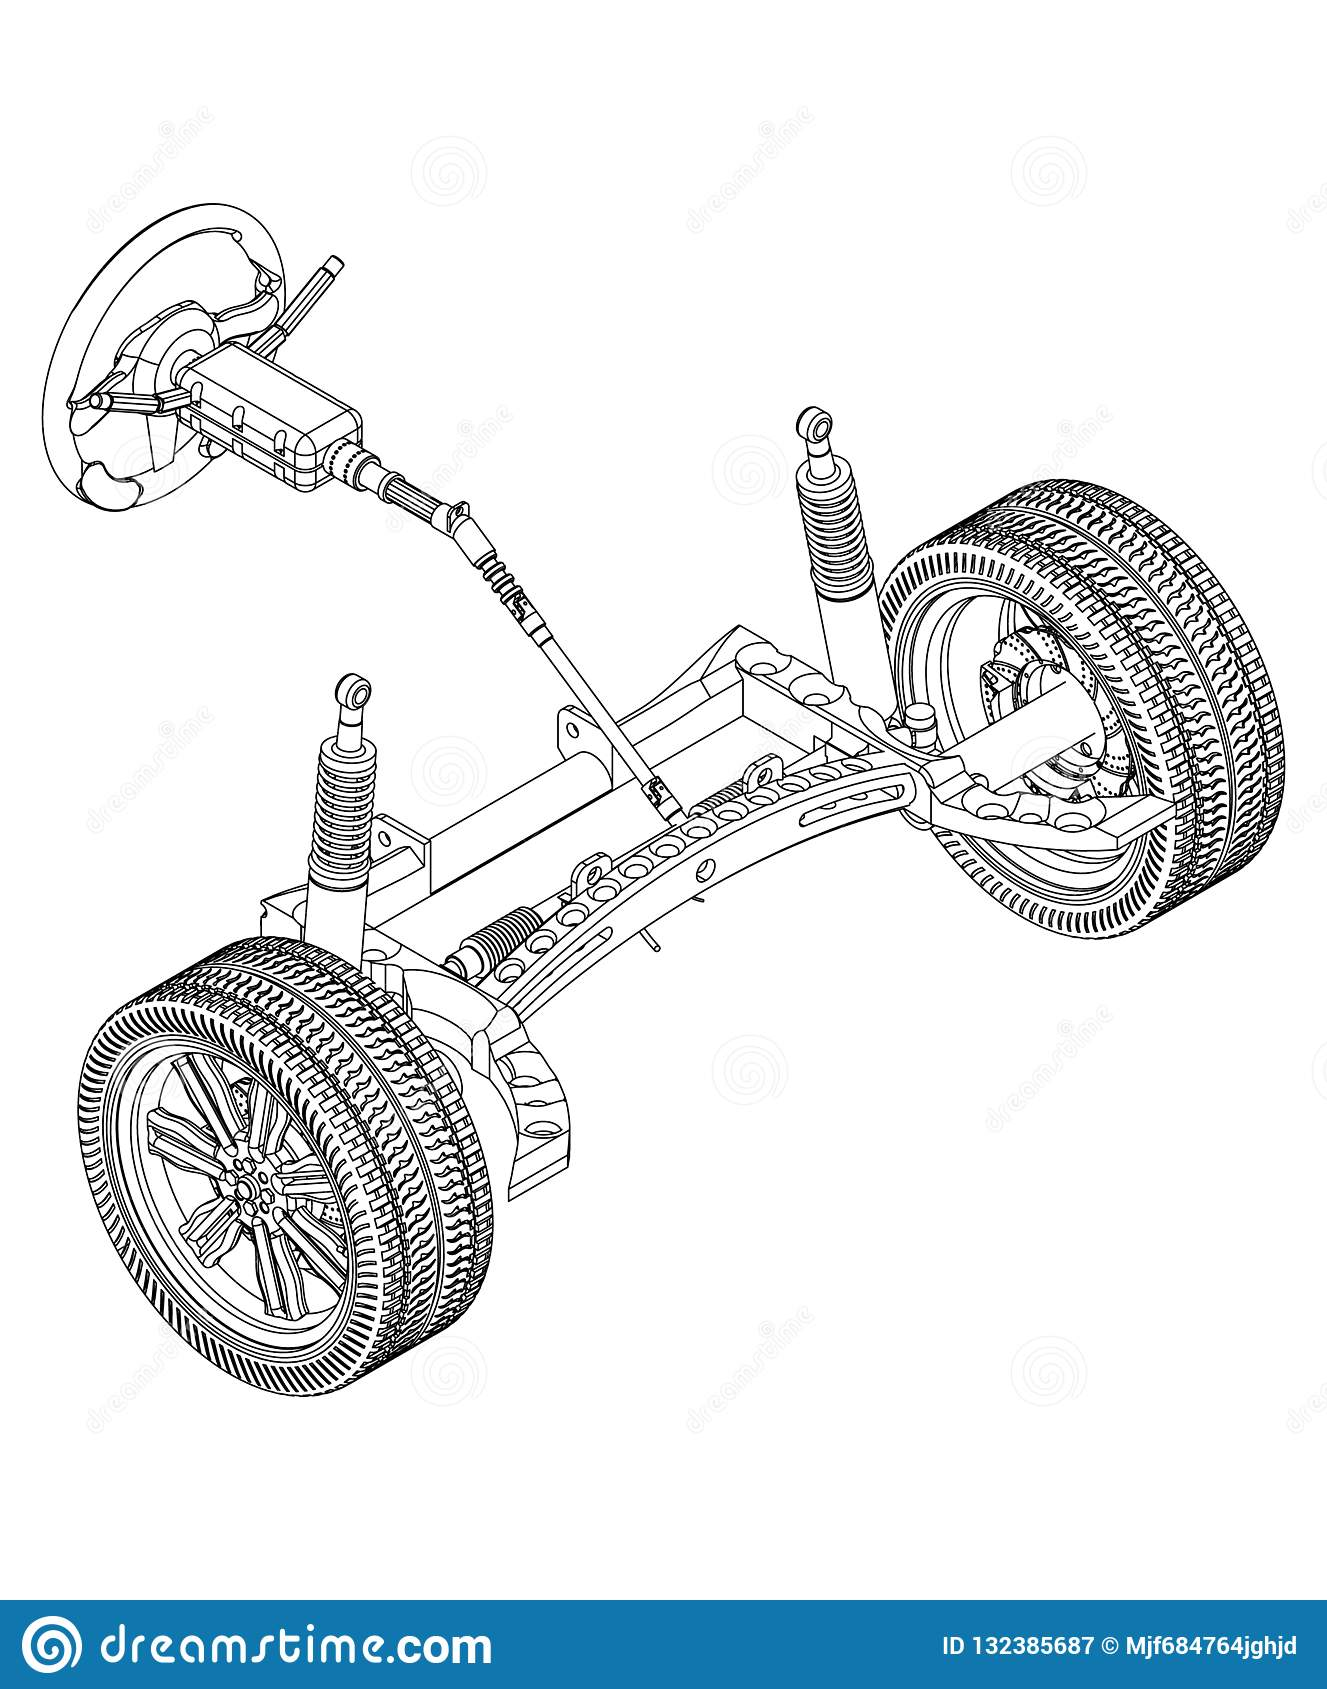 3d Model Of Steering Column And Car Suspension On White